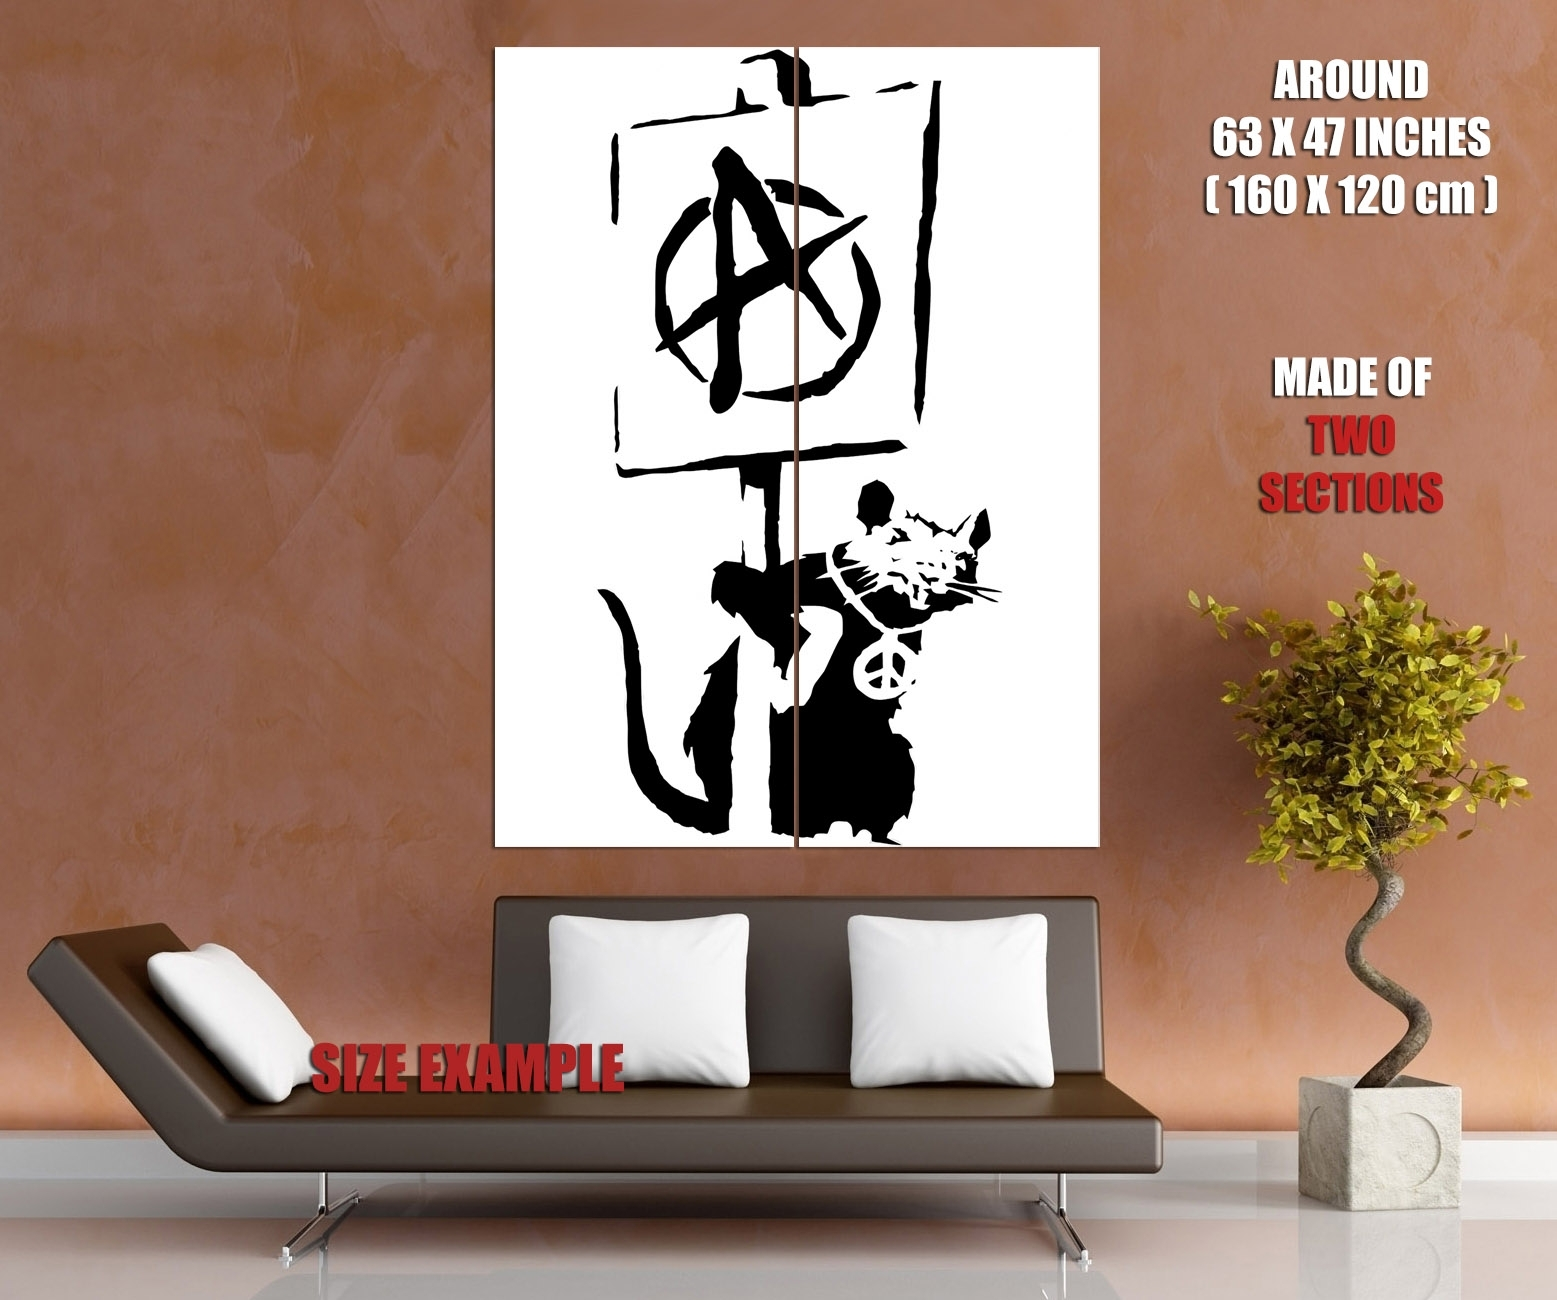 Banksy Rat Anarchy Pacifism Cool Graffiti Art Huge Giant Wall Print Pertaining To Most Recent Giant Wall Art (View 2 of 20)